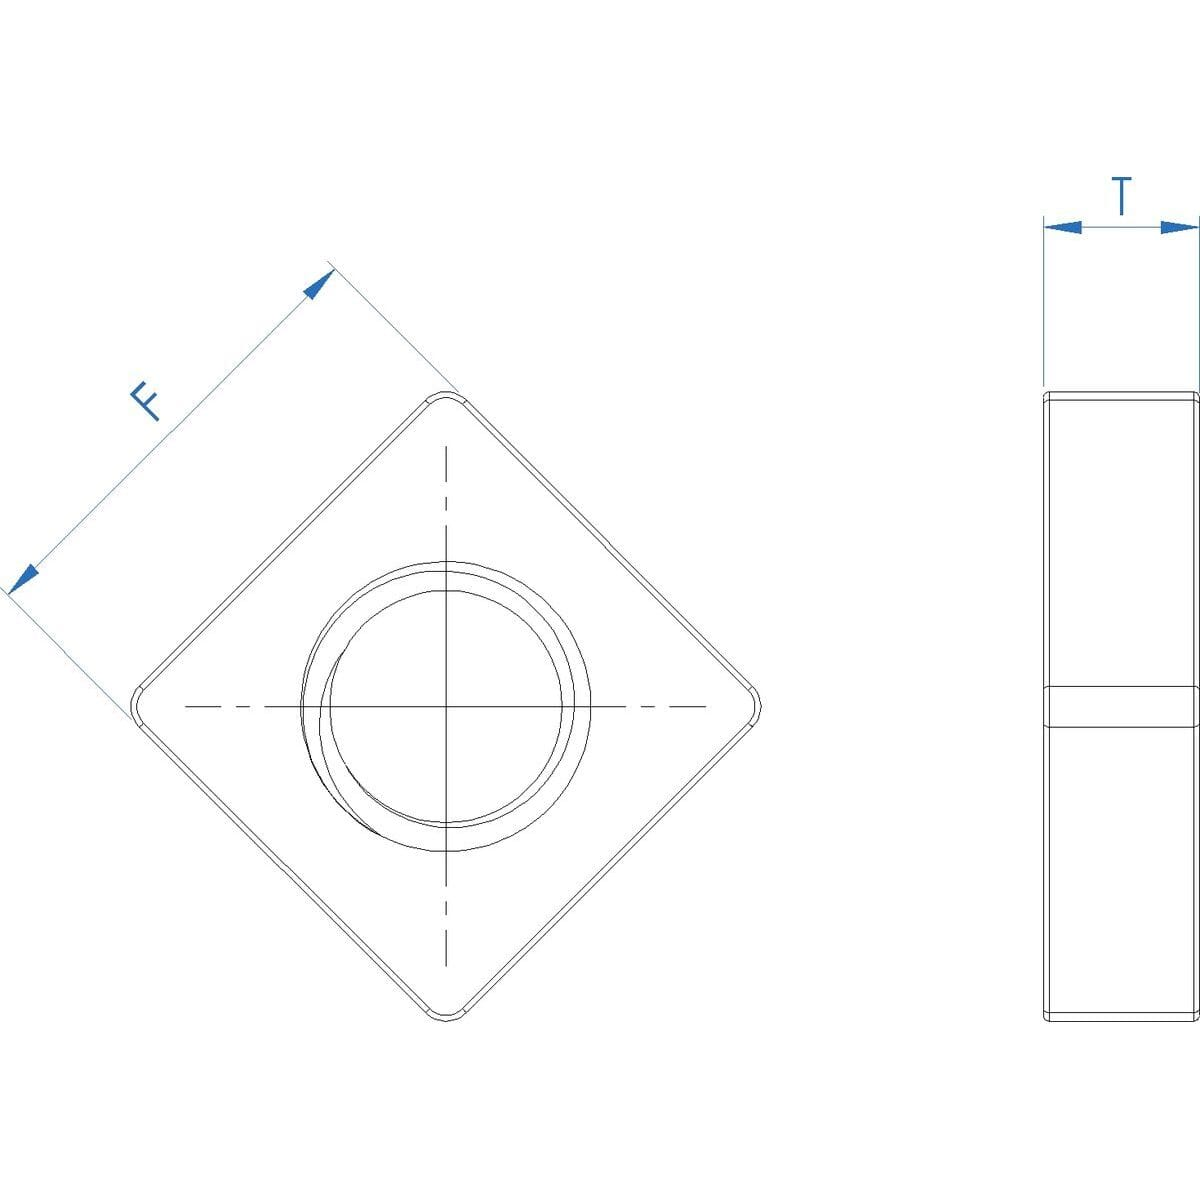 M3 Flat Square Nuts (DIN 562) - Stainless Steel (A2) Drawing